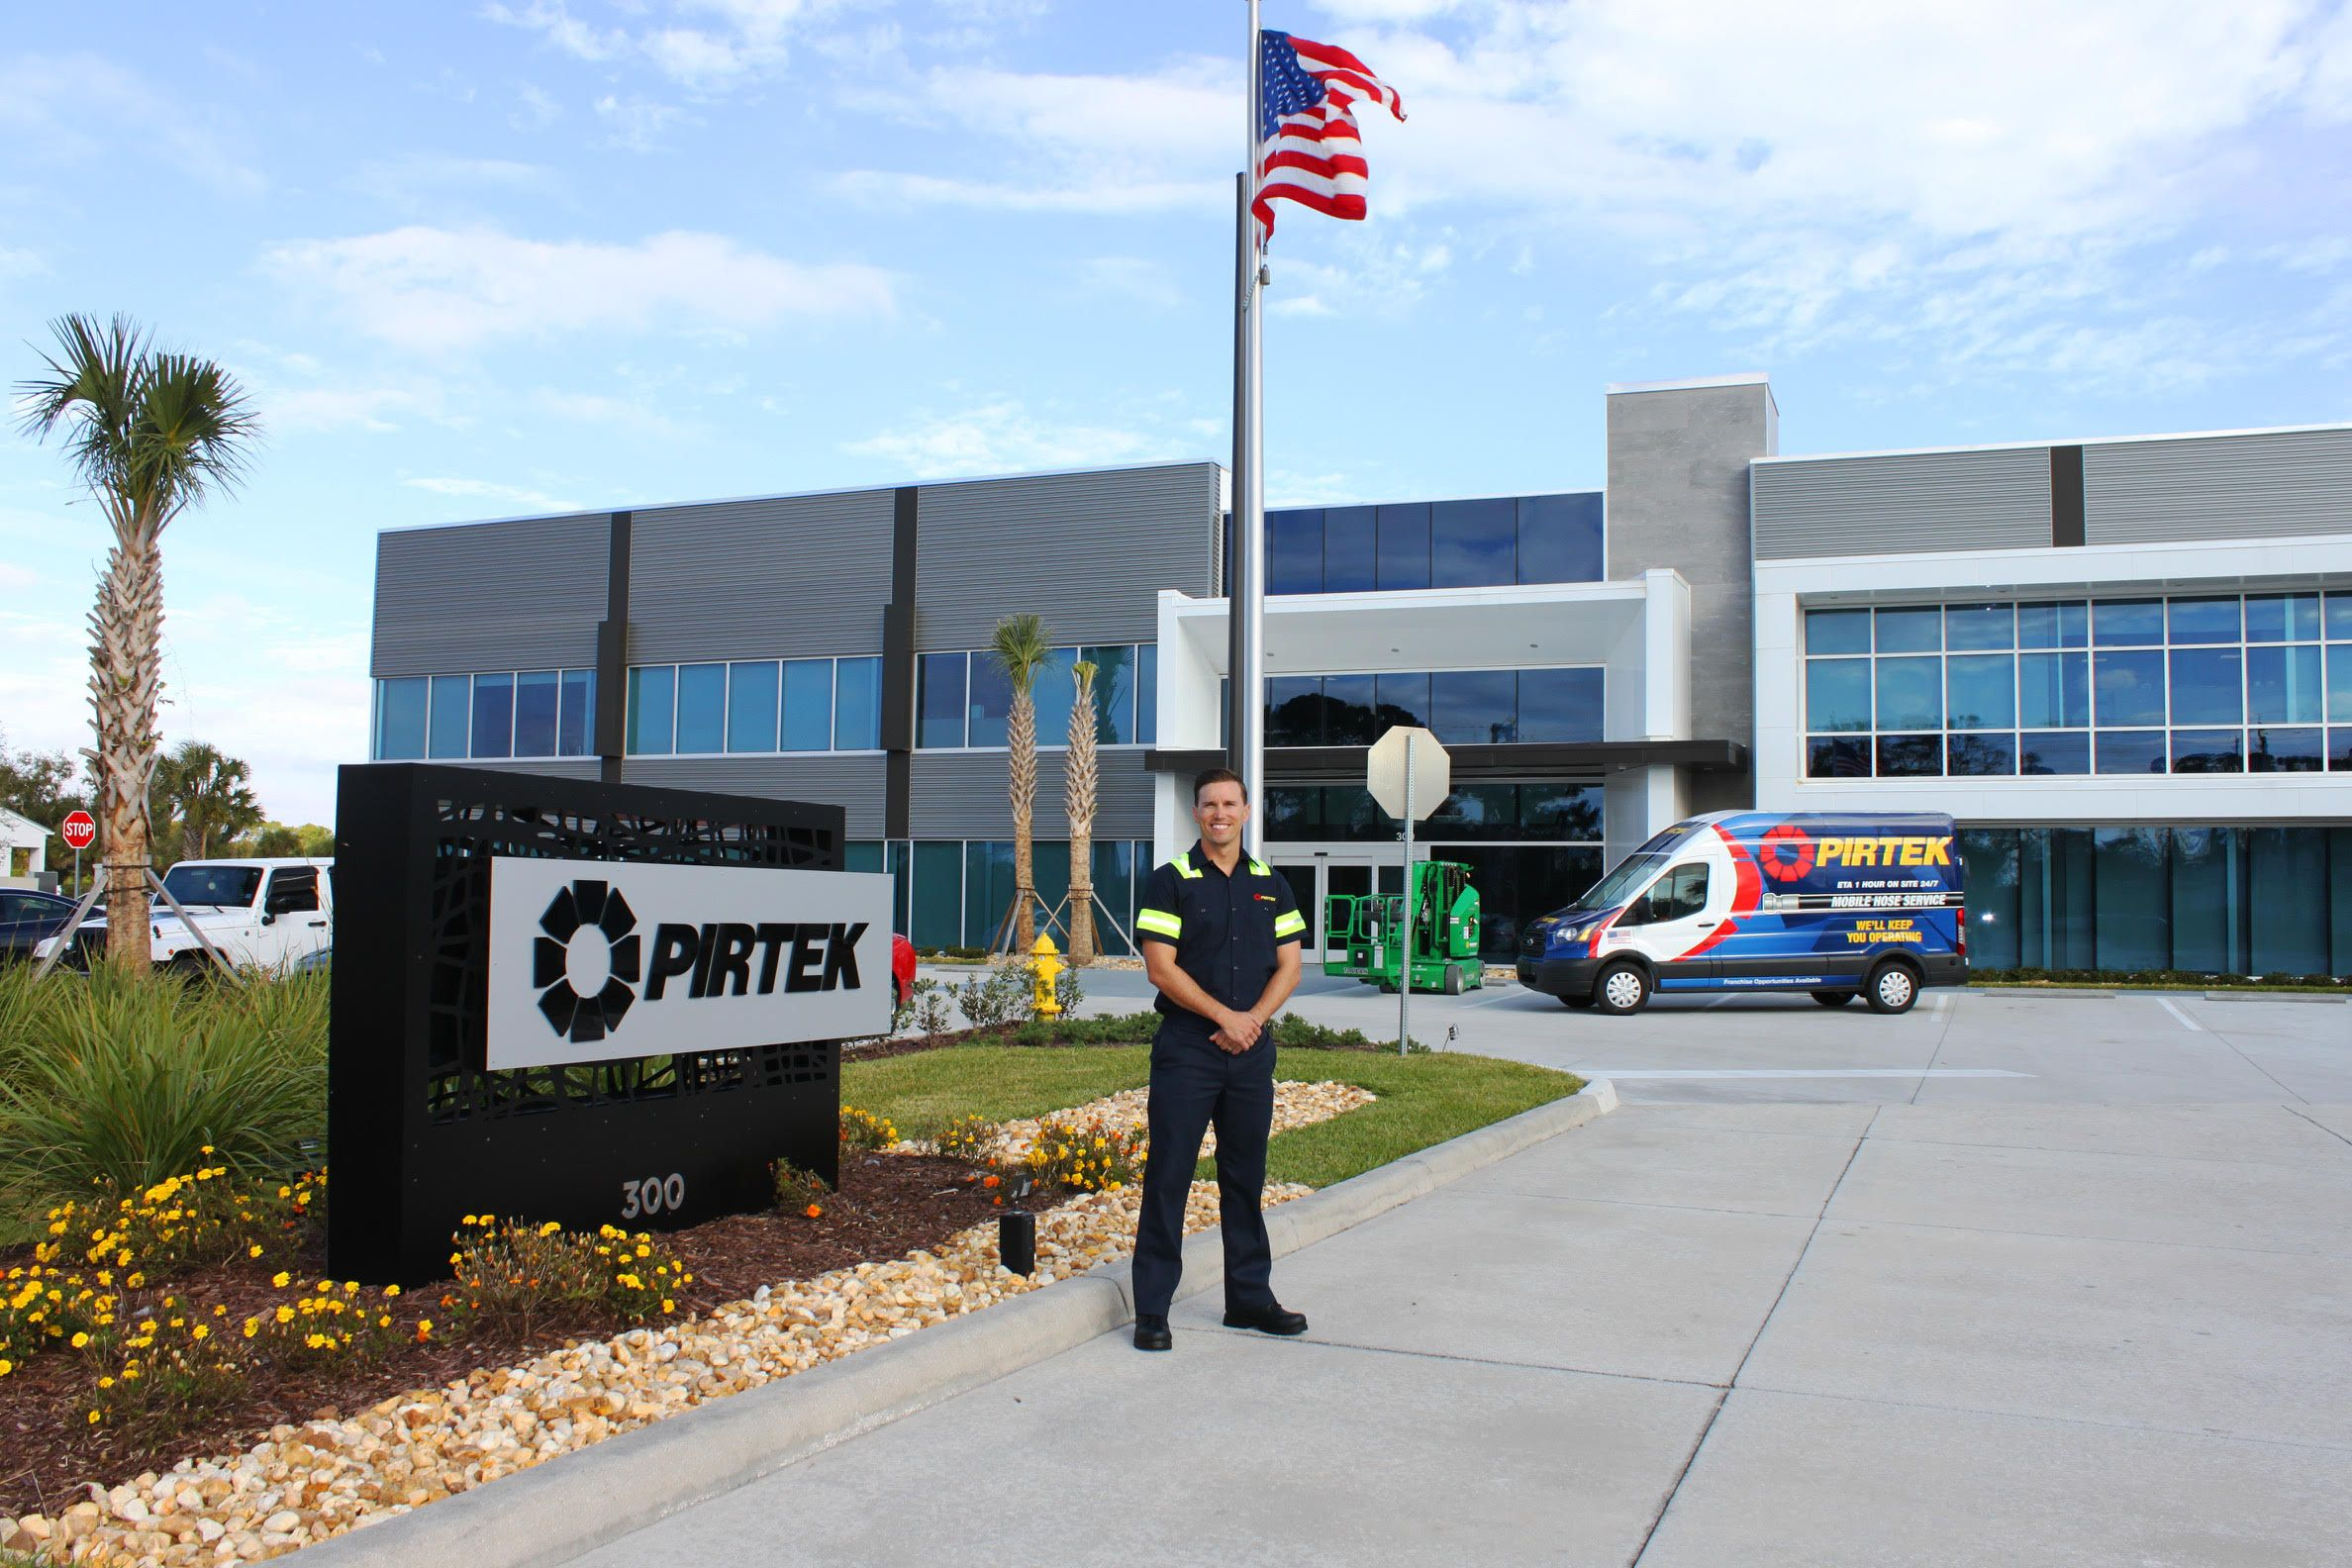 Pirtek US expands to Canada | Inside Franchise Business Executive